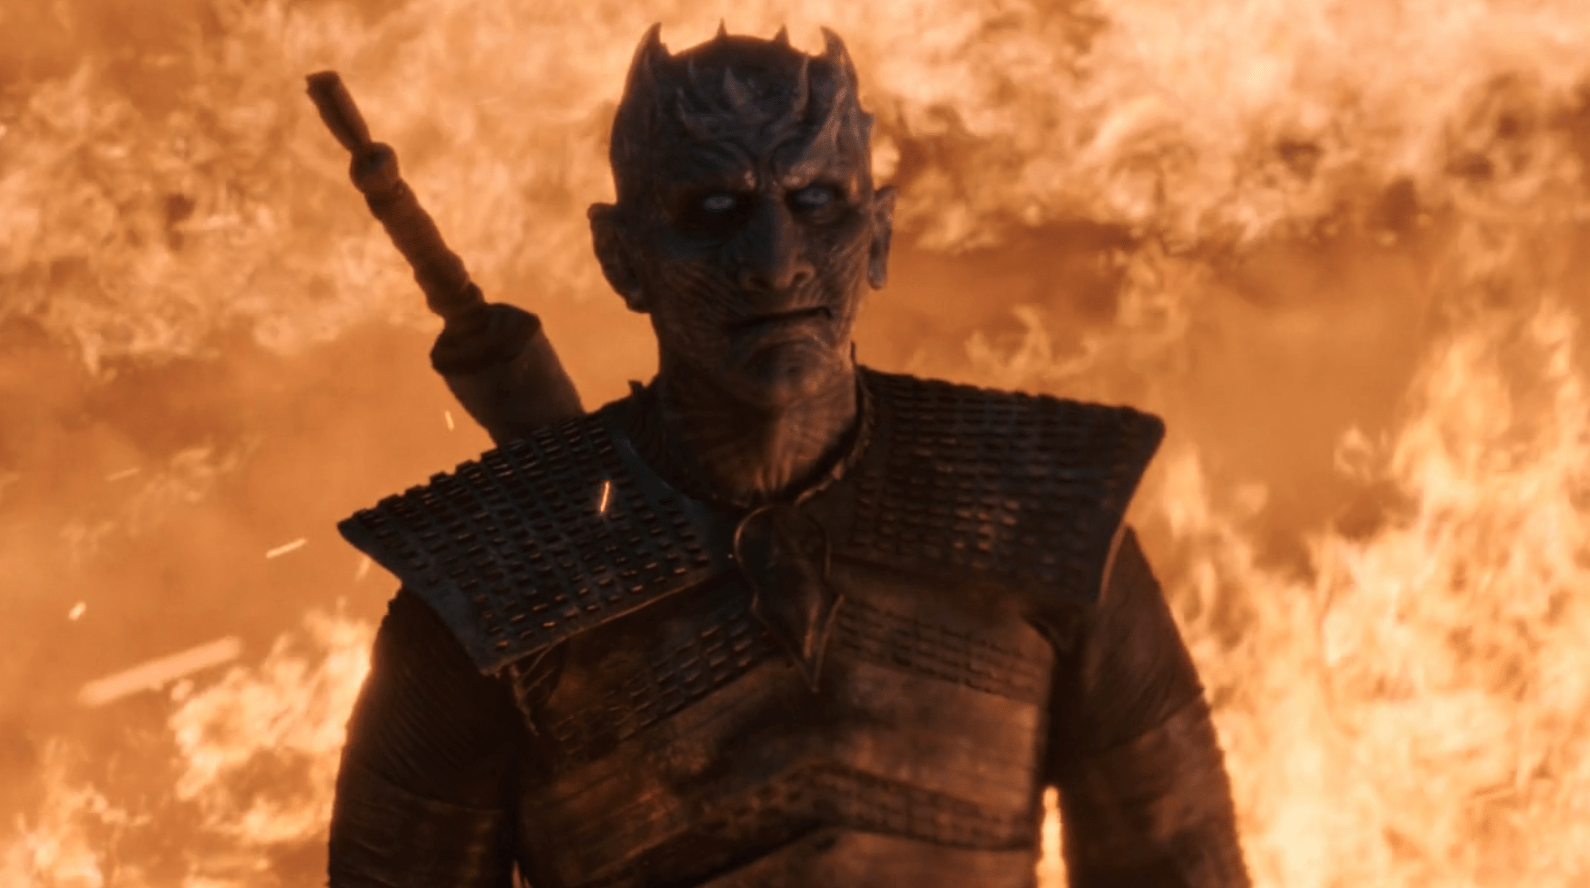 Return of the Night King